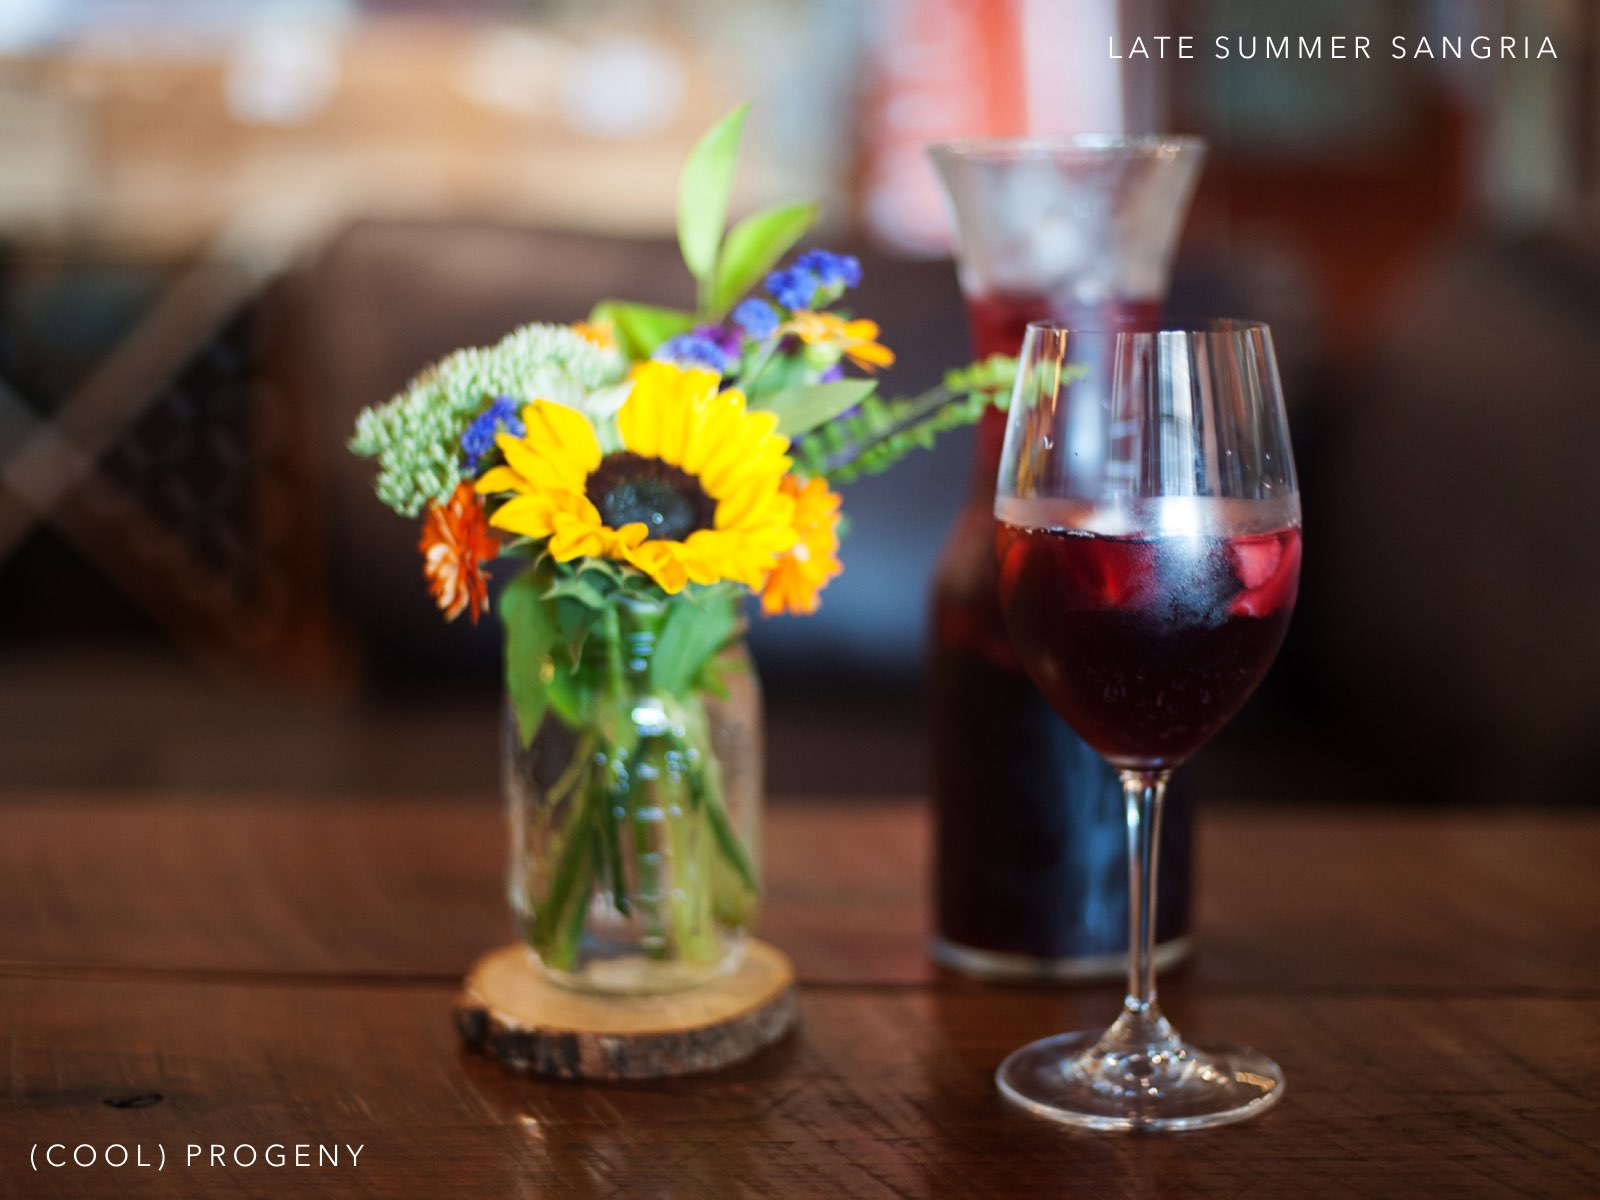 Late Summer Sangria - (cool) progeny